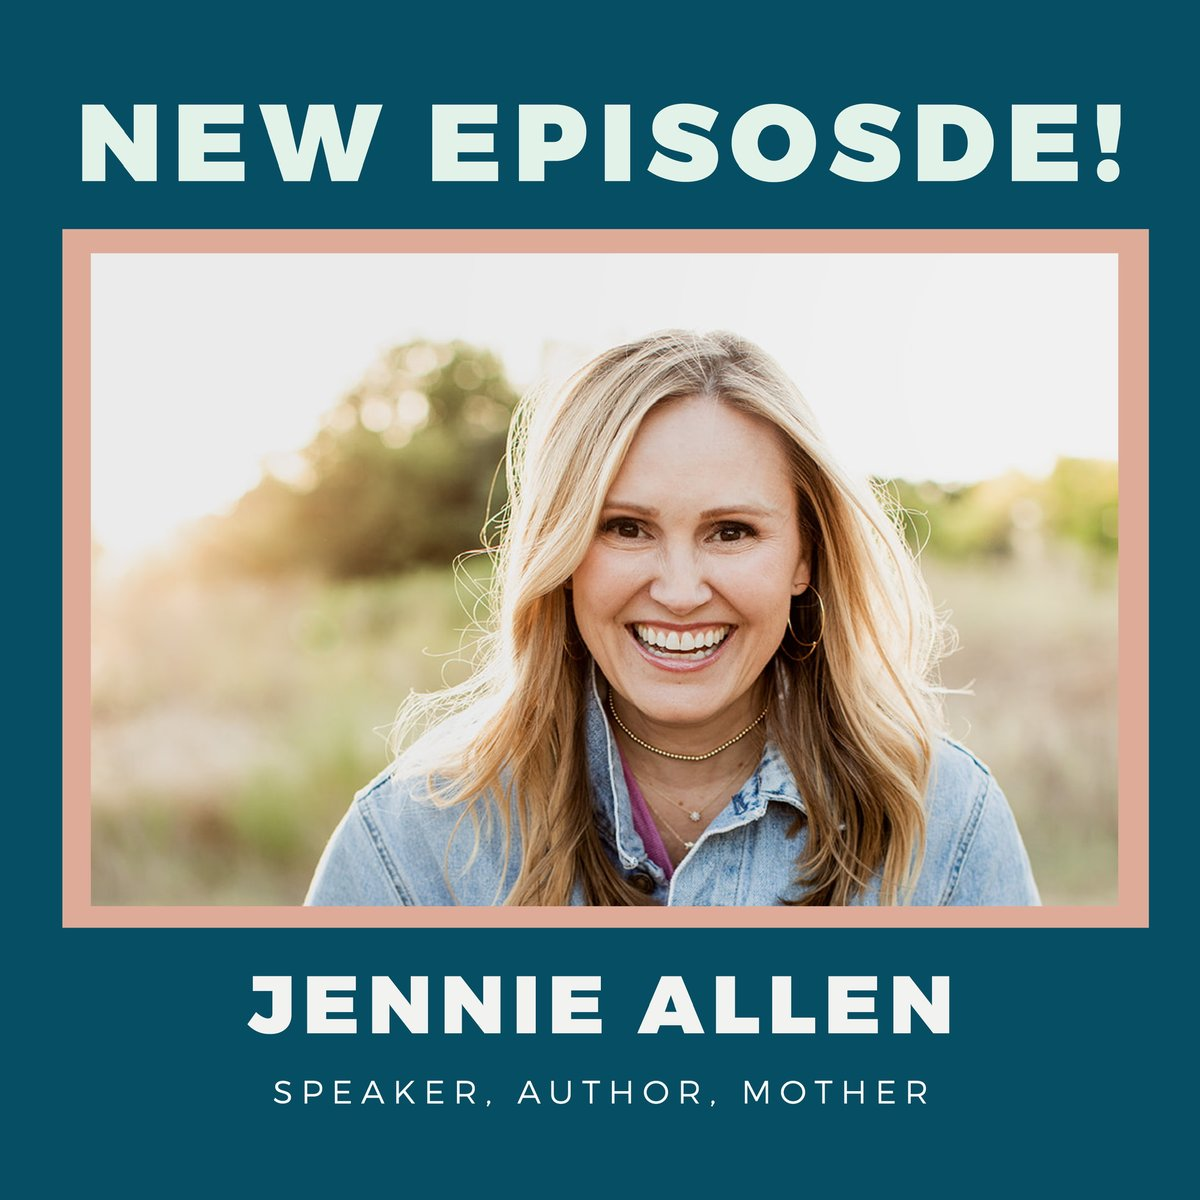 NEW EPISODE!! We got to sit down with Jennie Allen last week and hear her incredible journey of ministry and life! ALSO, we gave our thoughts on the best (and worst) quarantine advice, so basically you don't want to miss this one!!  https://podcasts.apple.com/us/podcast/whoa-thats-good-podcast/id1433974017…